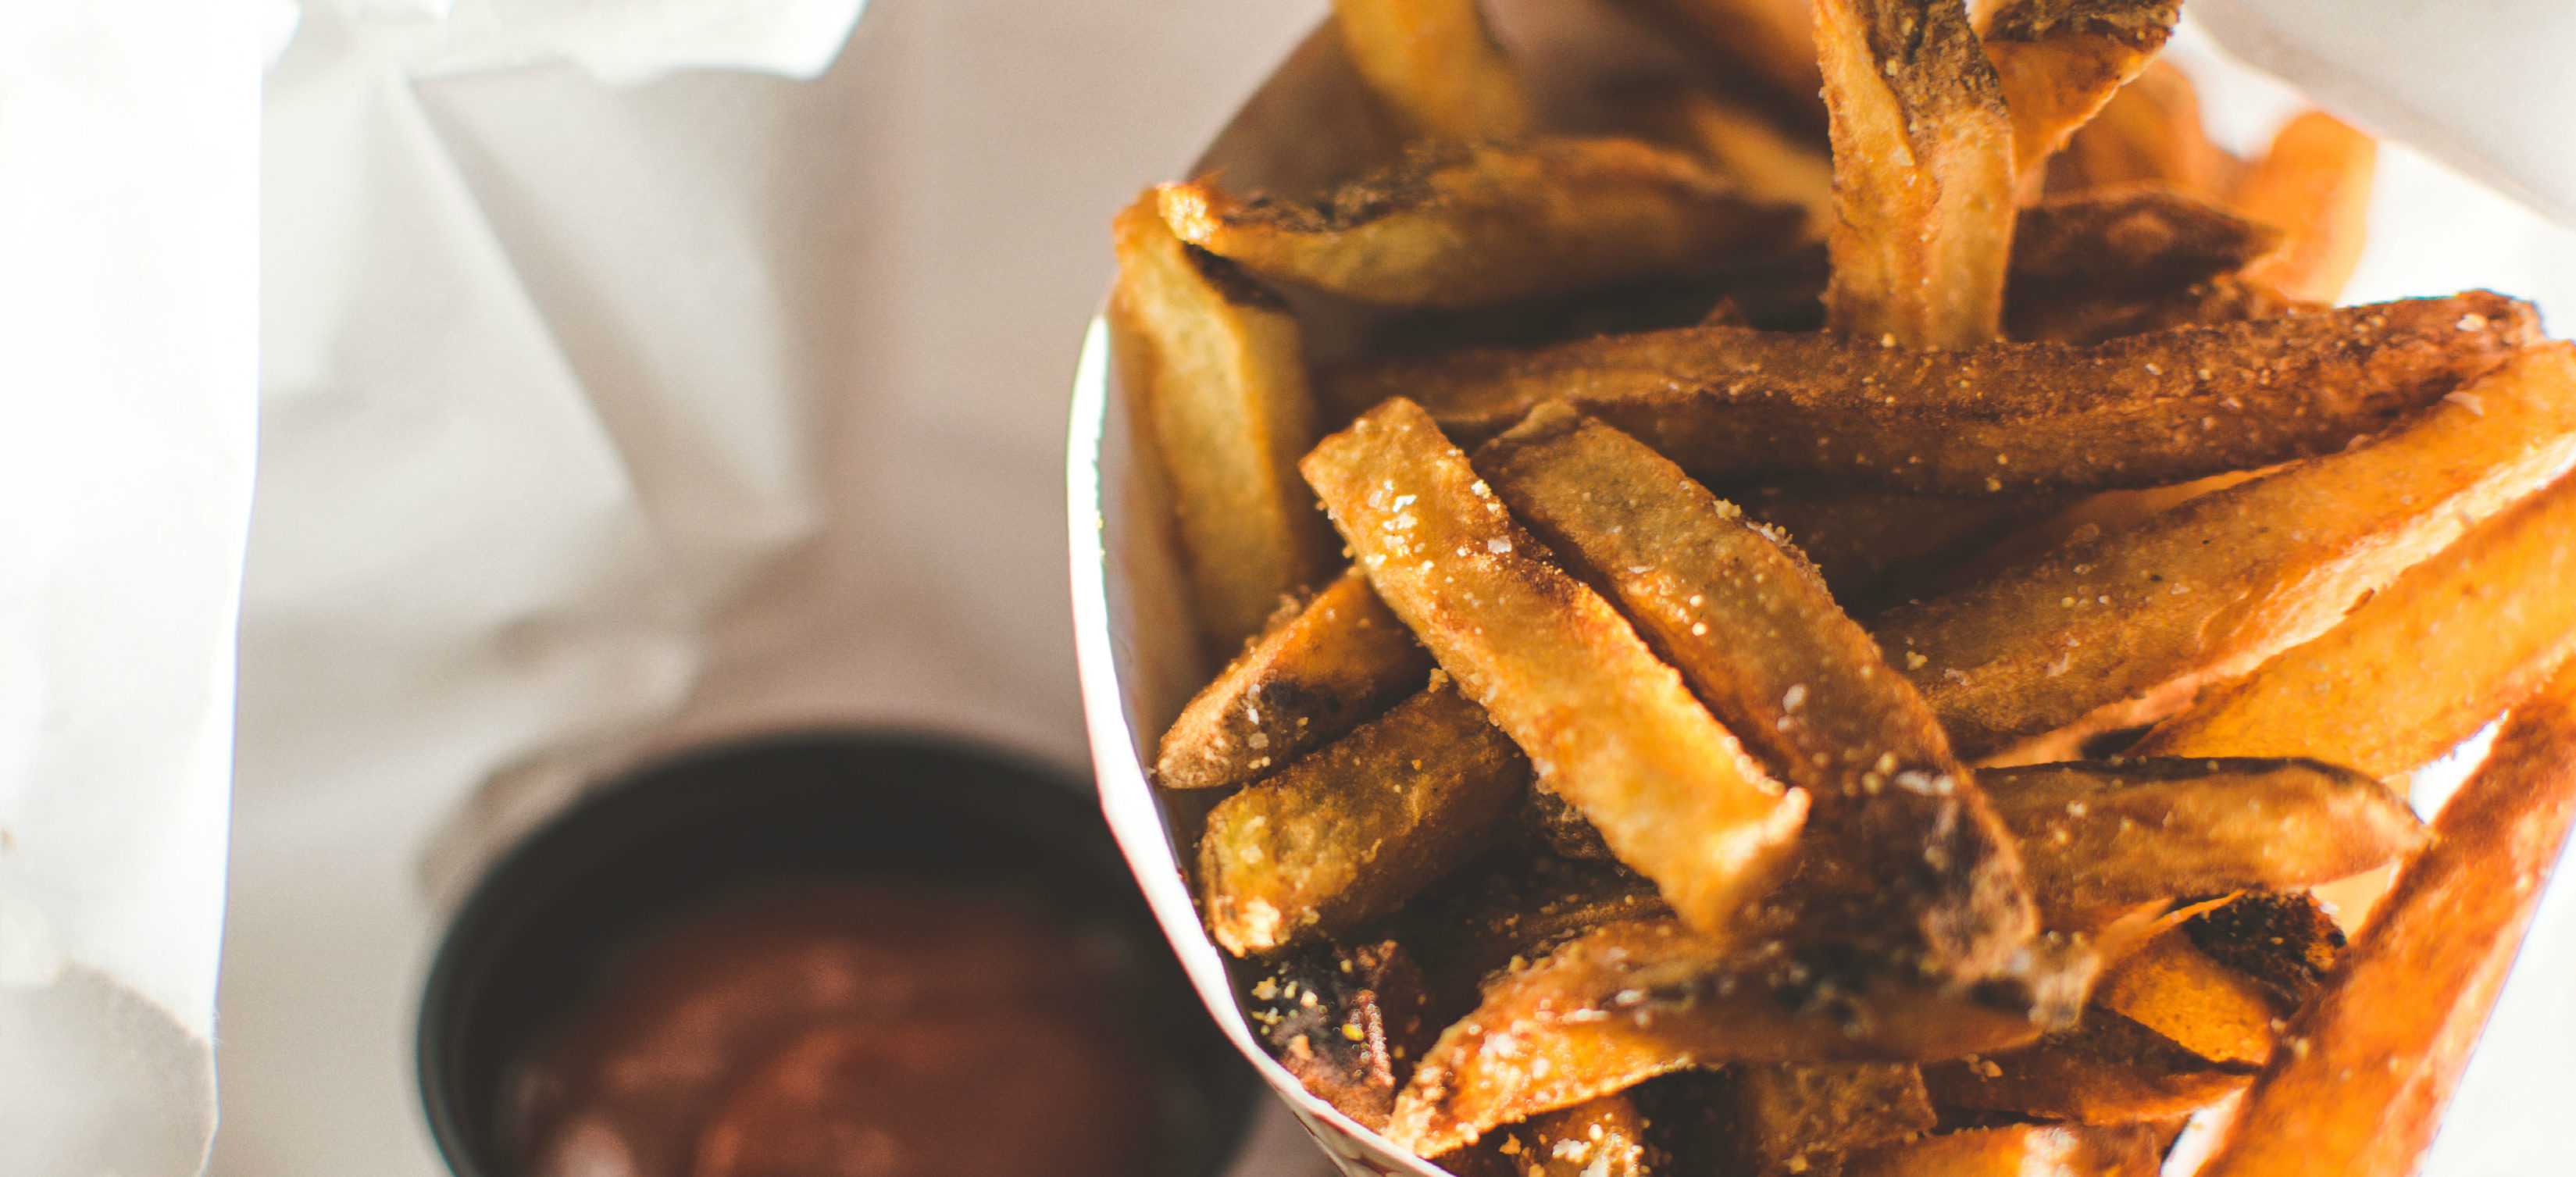 3 Ways Other Countries Do Fries Better